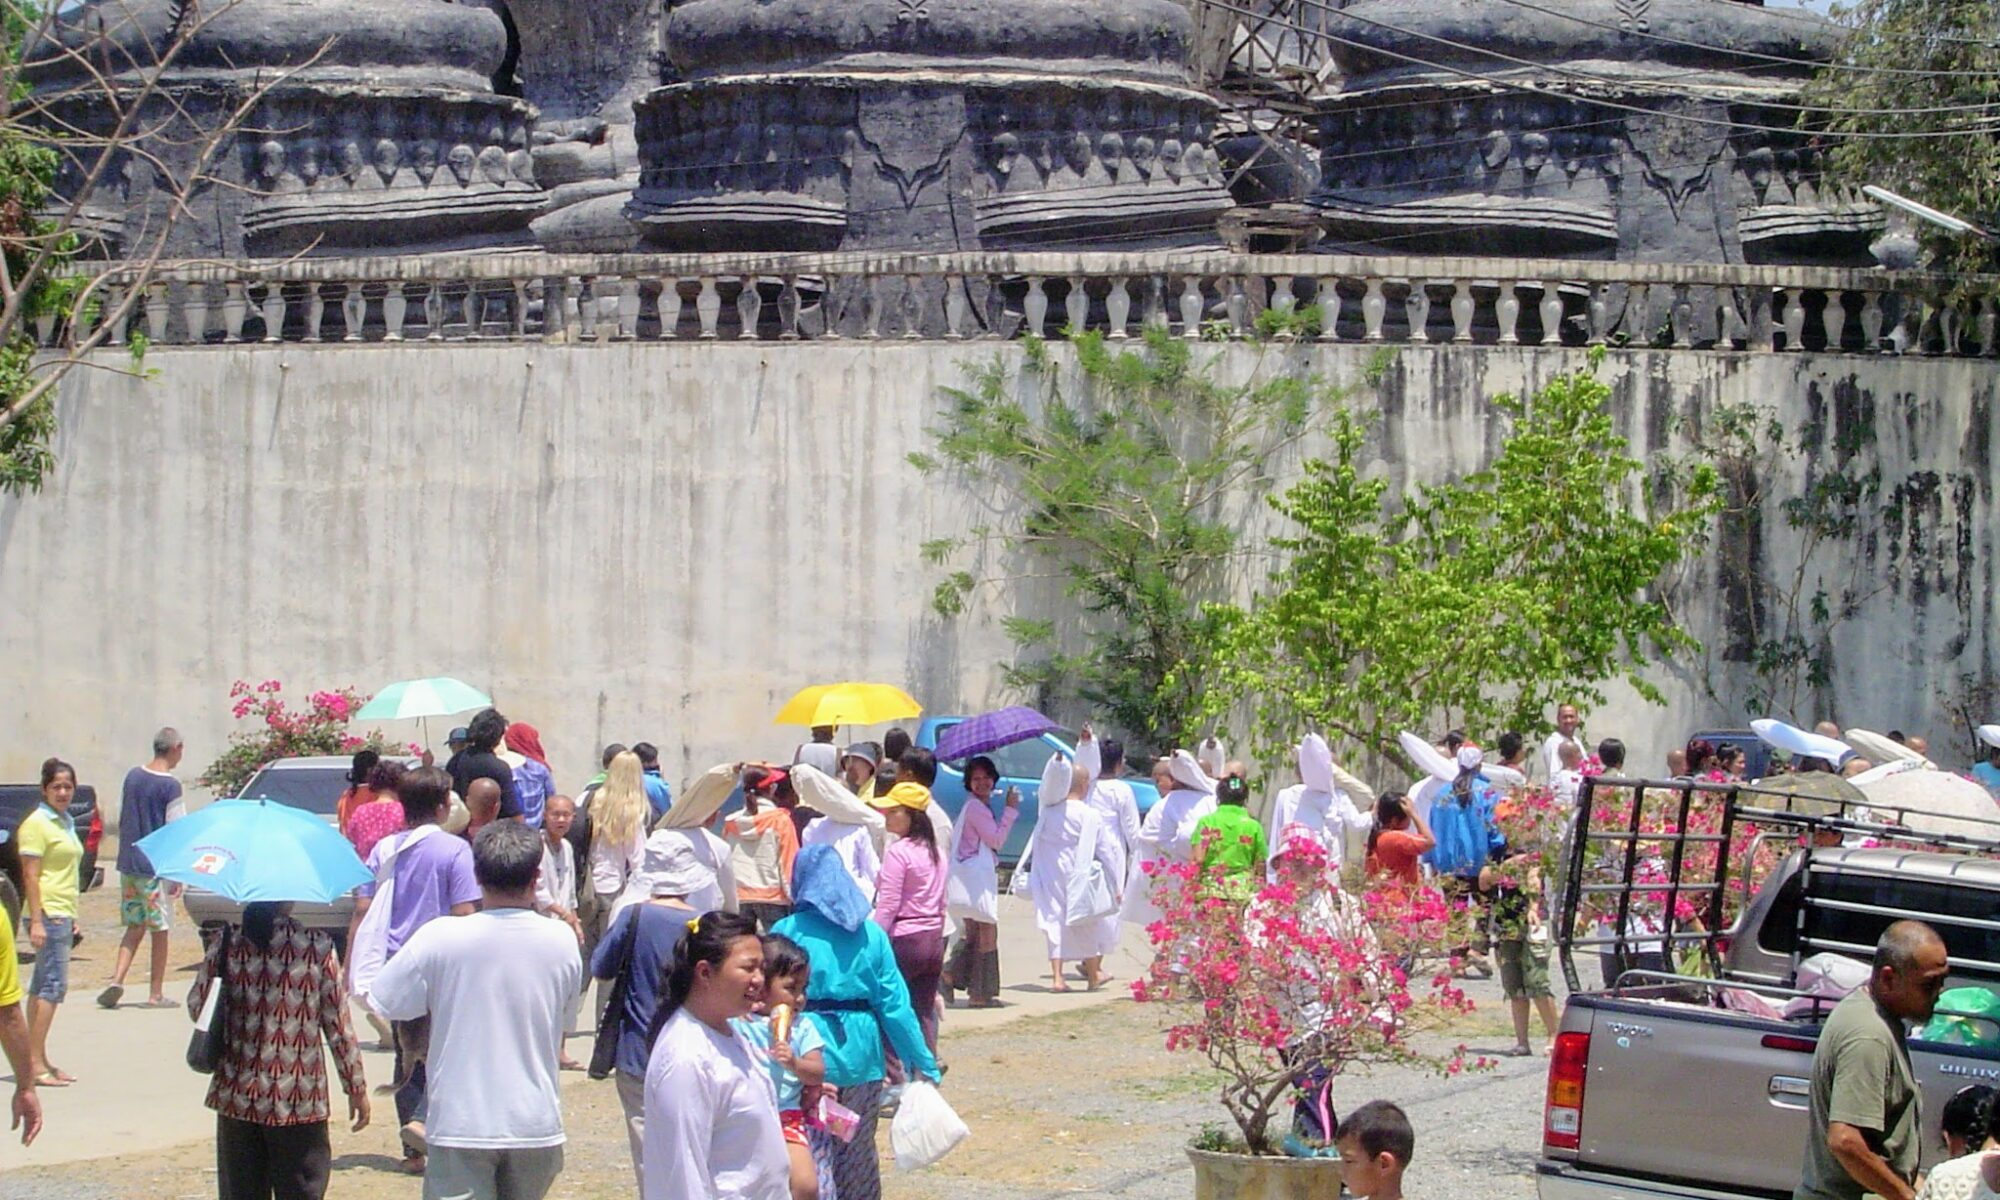 Crowd of Buddhist nuns and laypeople with children setting of on Tudong (walking pilgrimage)